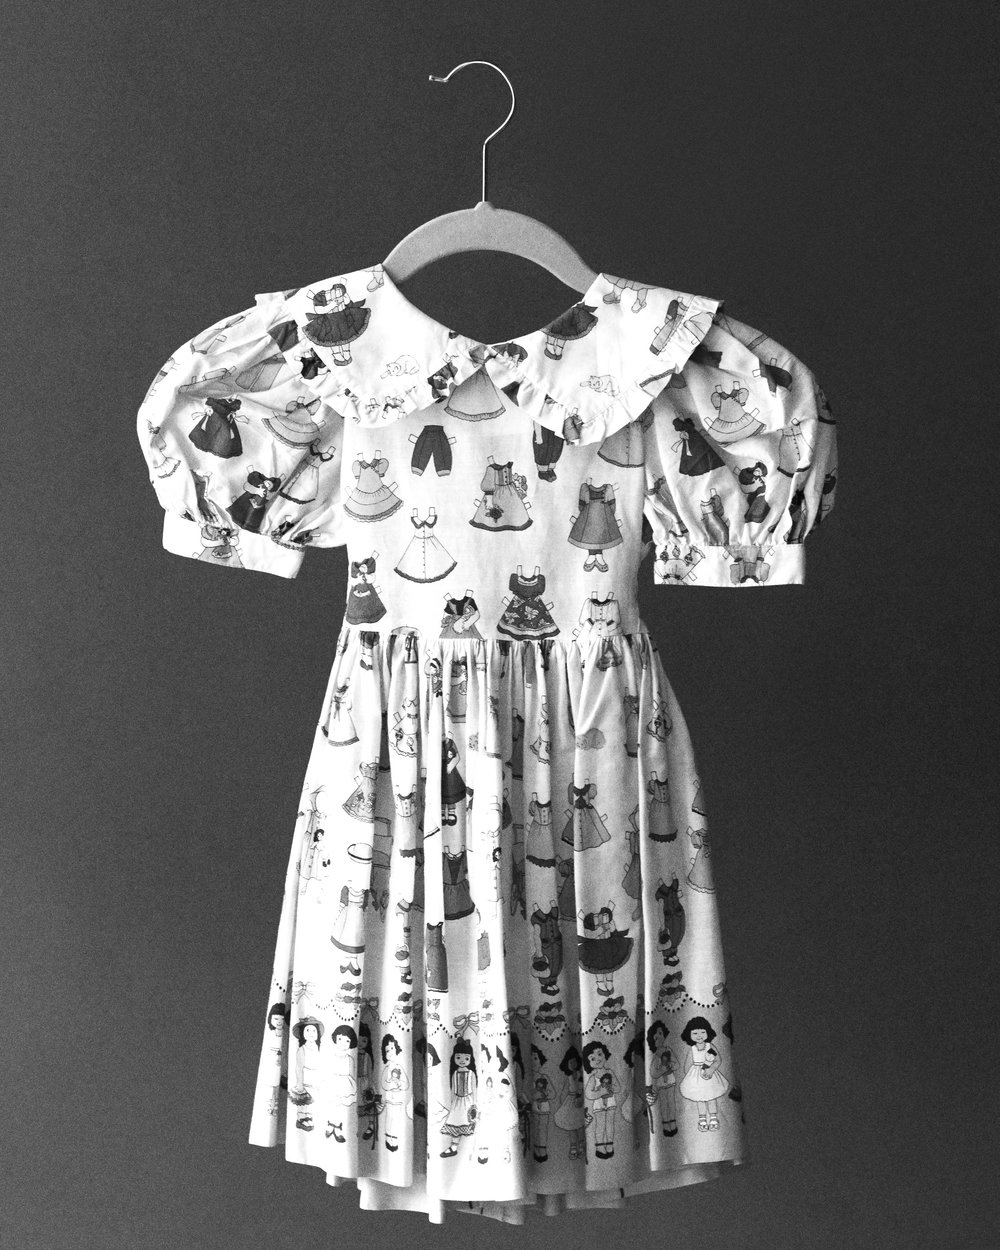 - WHY IS THIS OBJECT BEAUTIFUL TO YOU?Every year my mother would pull out and admire this dress from when I was a few years old. She said whenever I wore it, it was as if I was shopping because I would point to each little